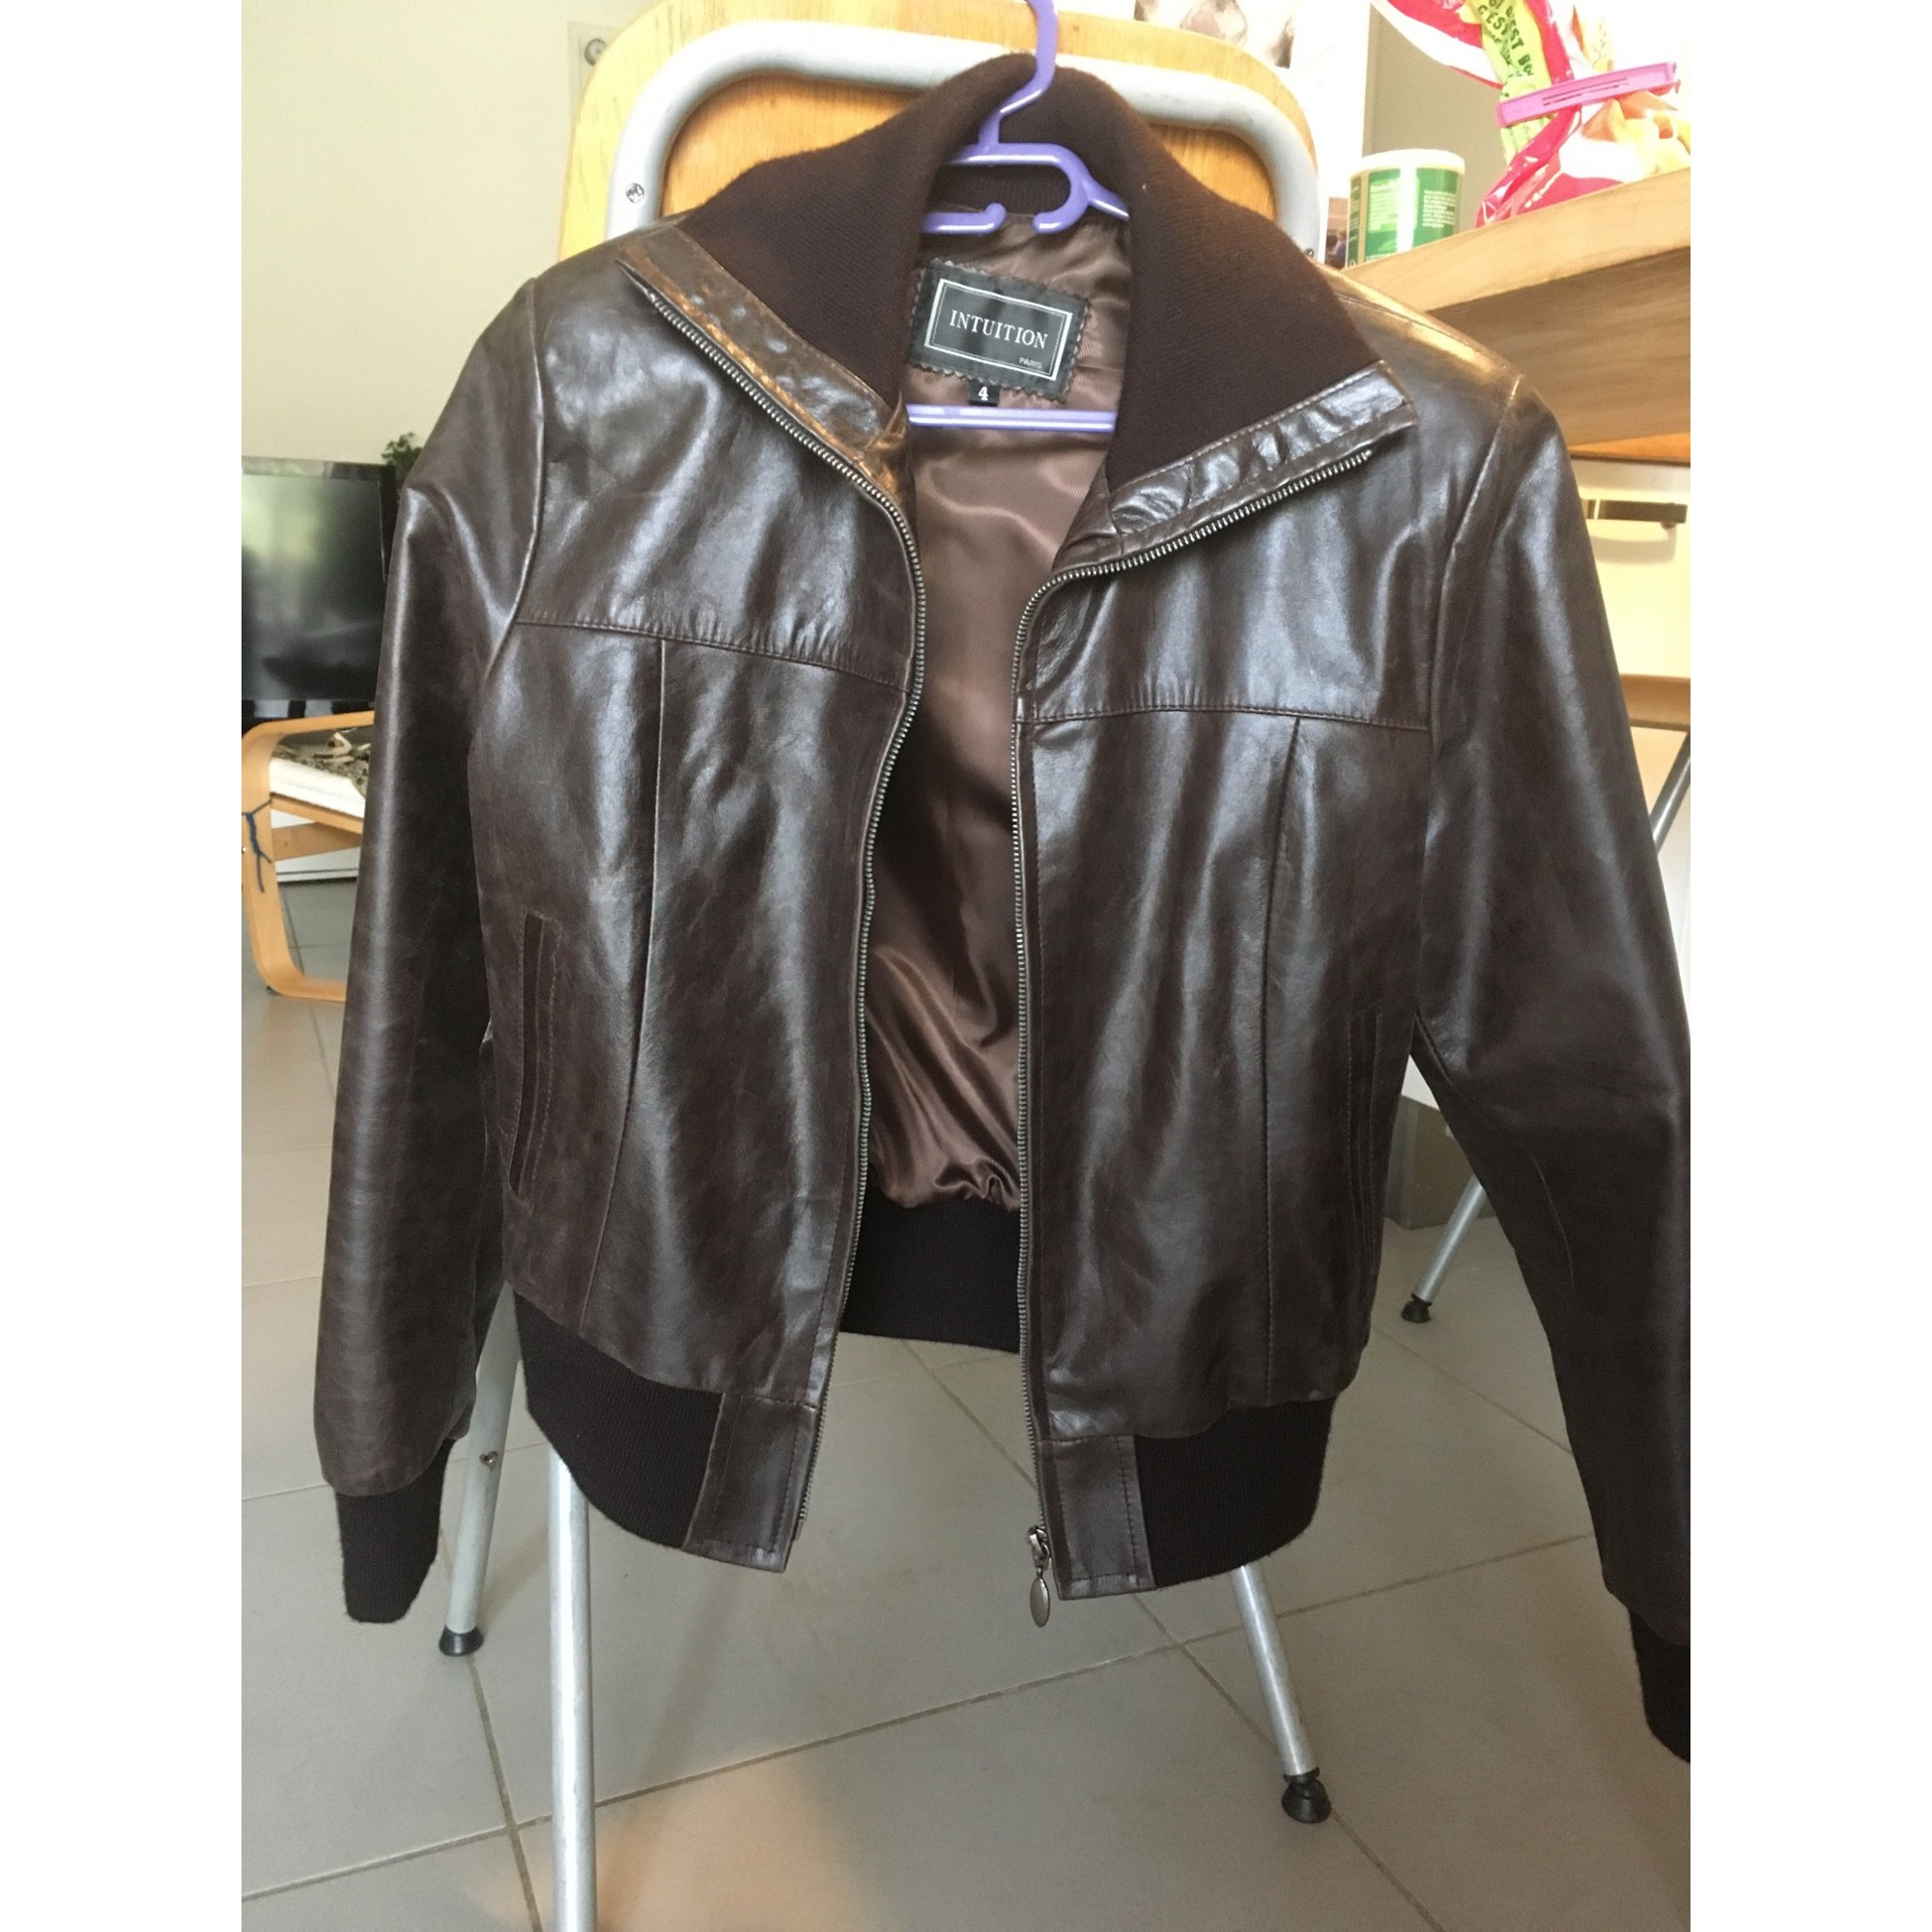 Veste en cuir INTUITION Marron